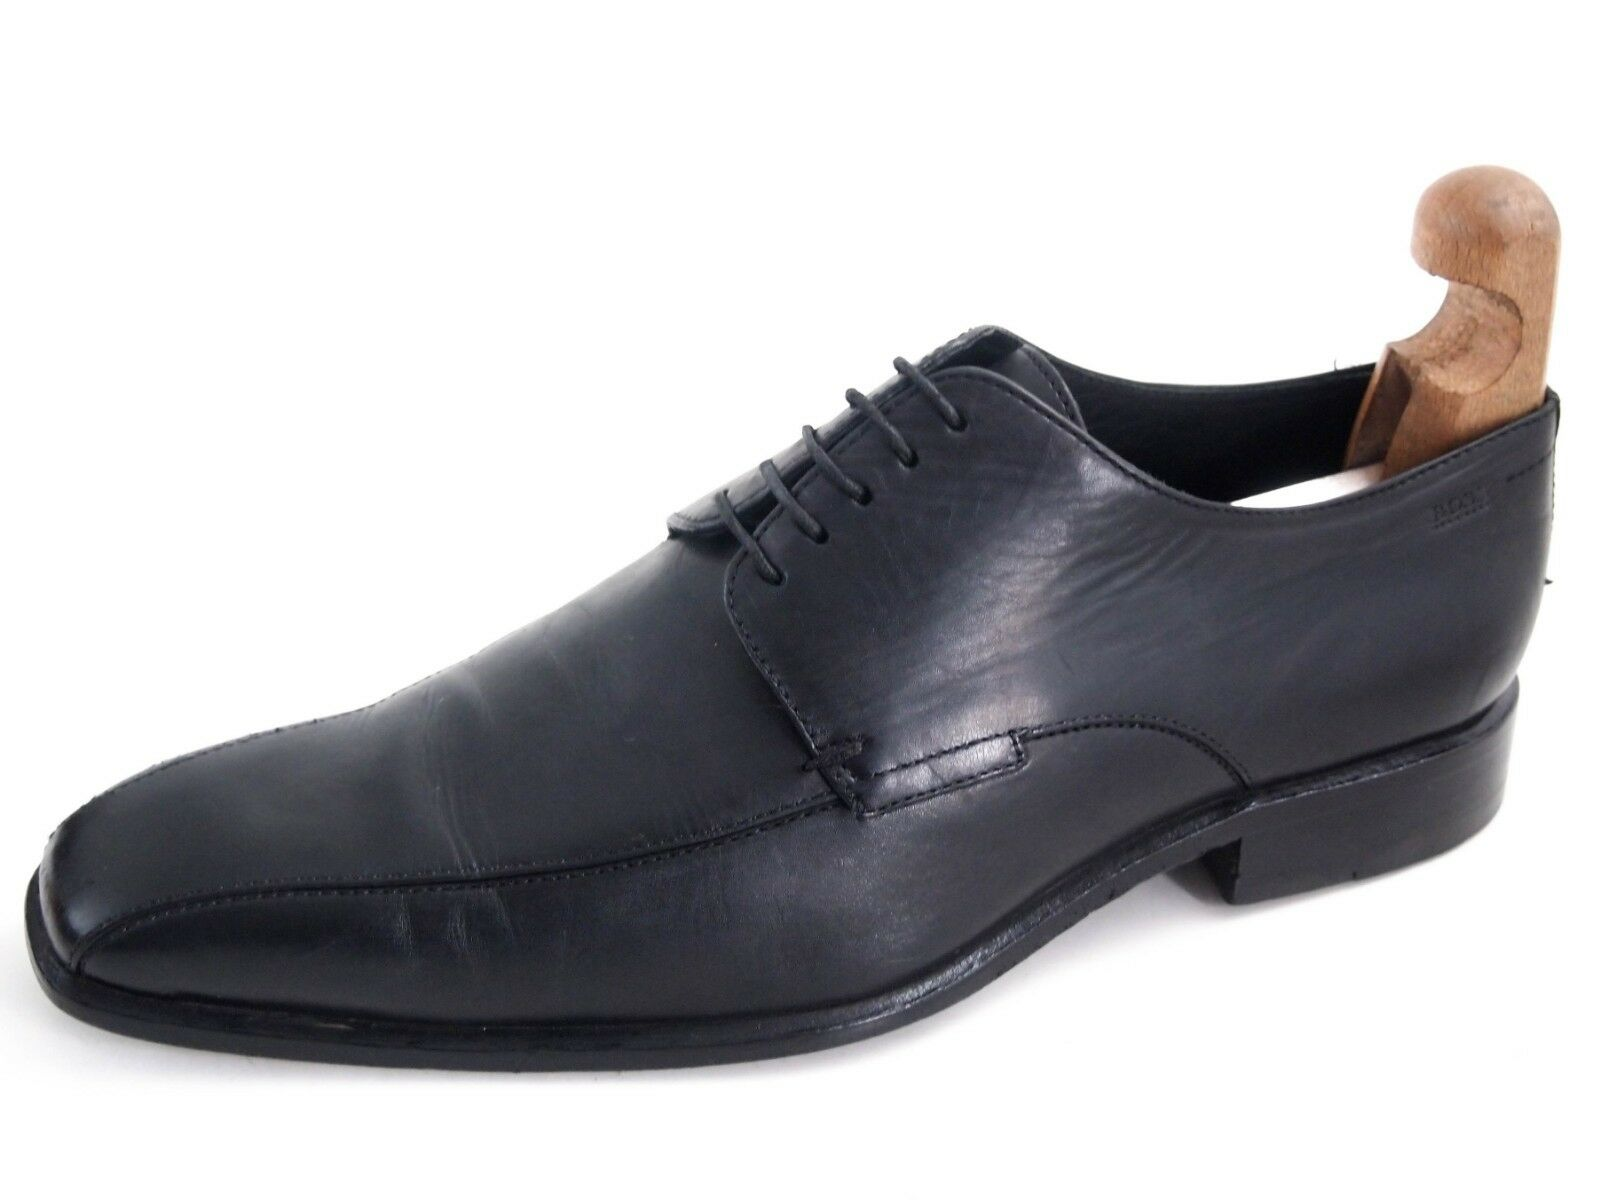 Hugo Boss Derby Oxfords, schwarzes Leder, Herrenschuhgröße UK 8 EU  340